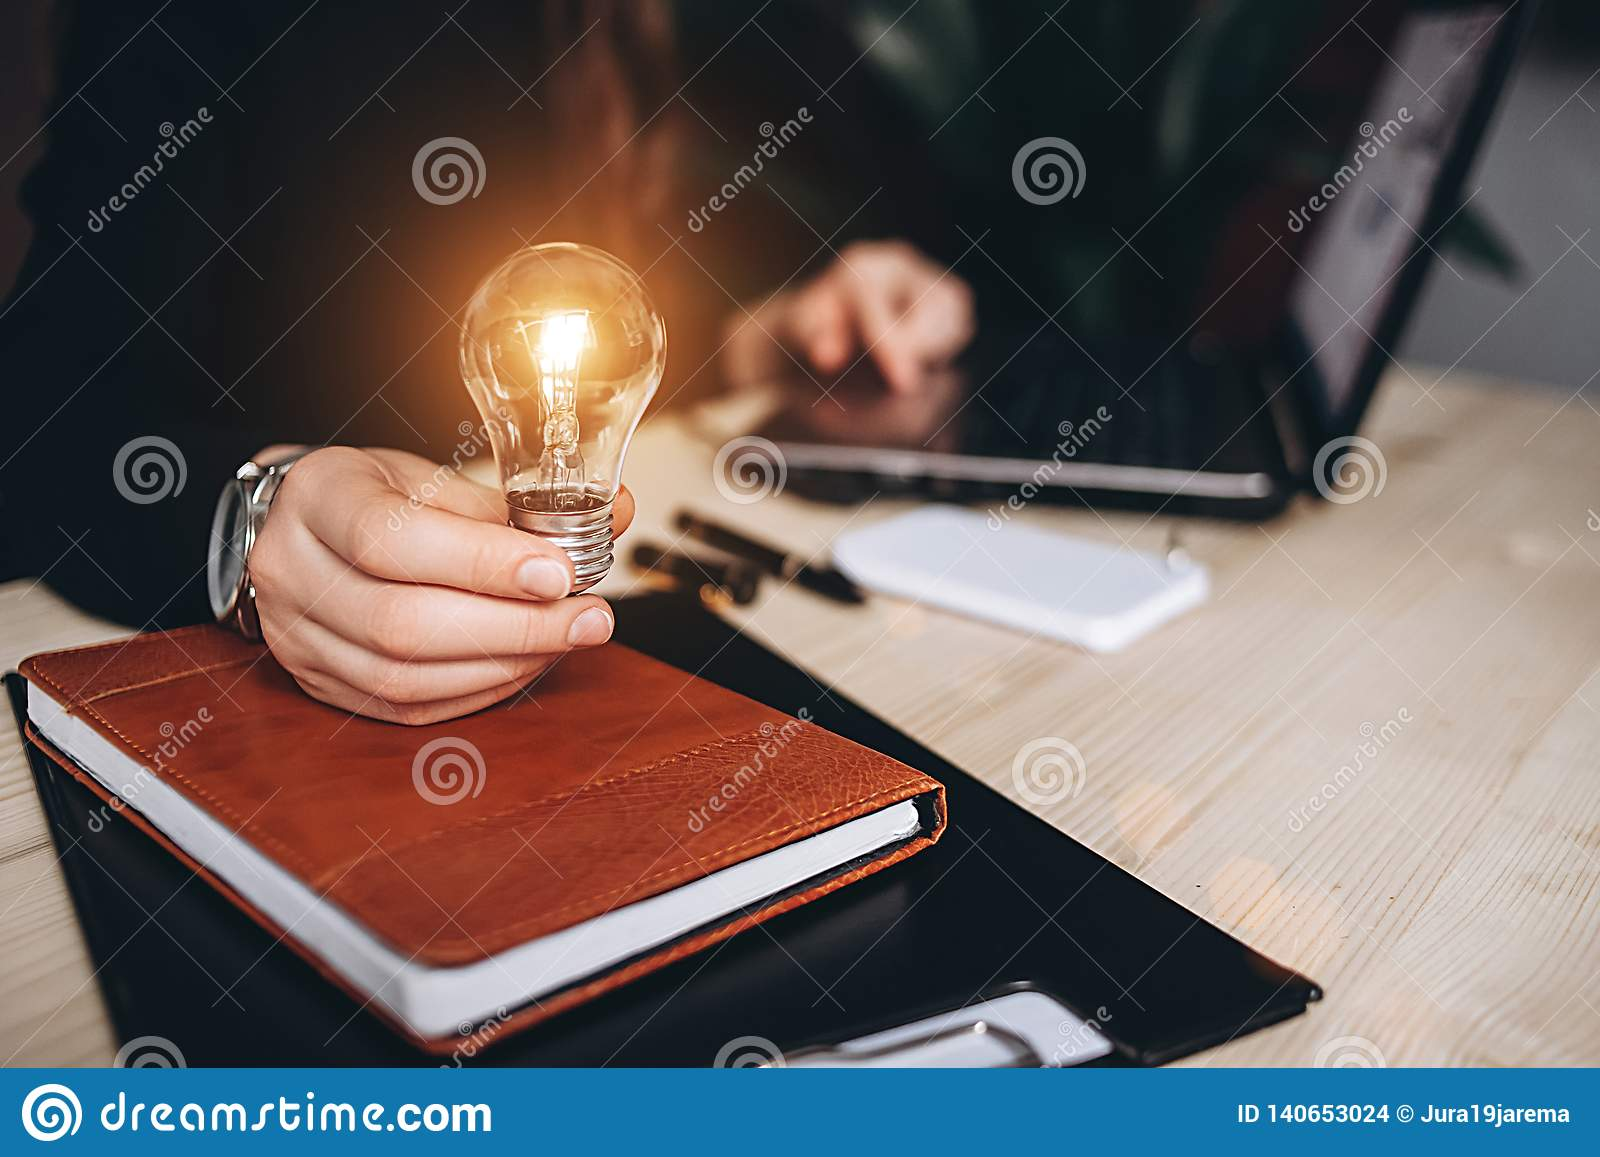 Business Woman holding light bulbs on the desk in an office and works on computer.